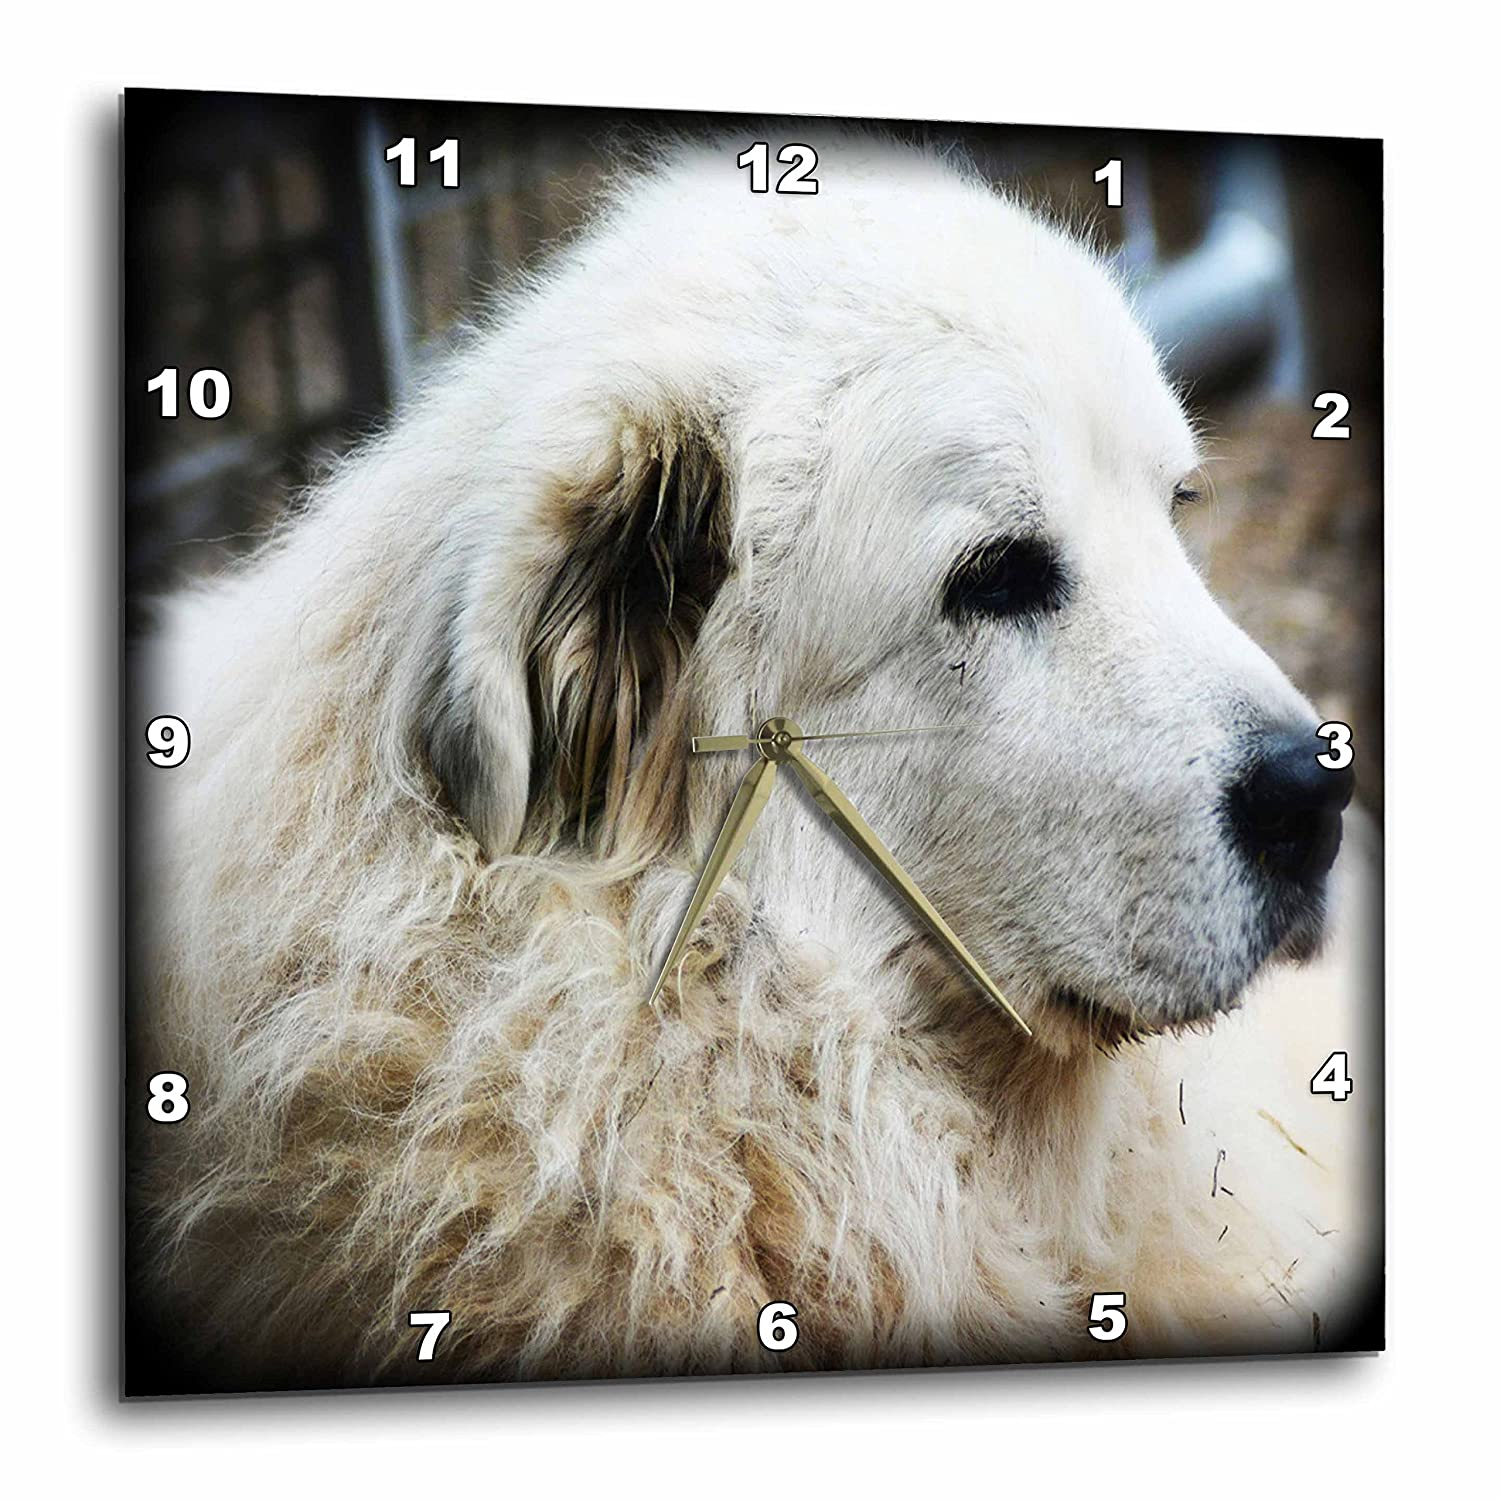 3dRose WhiteOaks Photography and Artwork - Dog Humor - Profile of a Guard Dog is an old farm dog who guards the animals - 10x10 Wall Clock